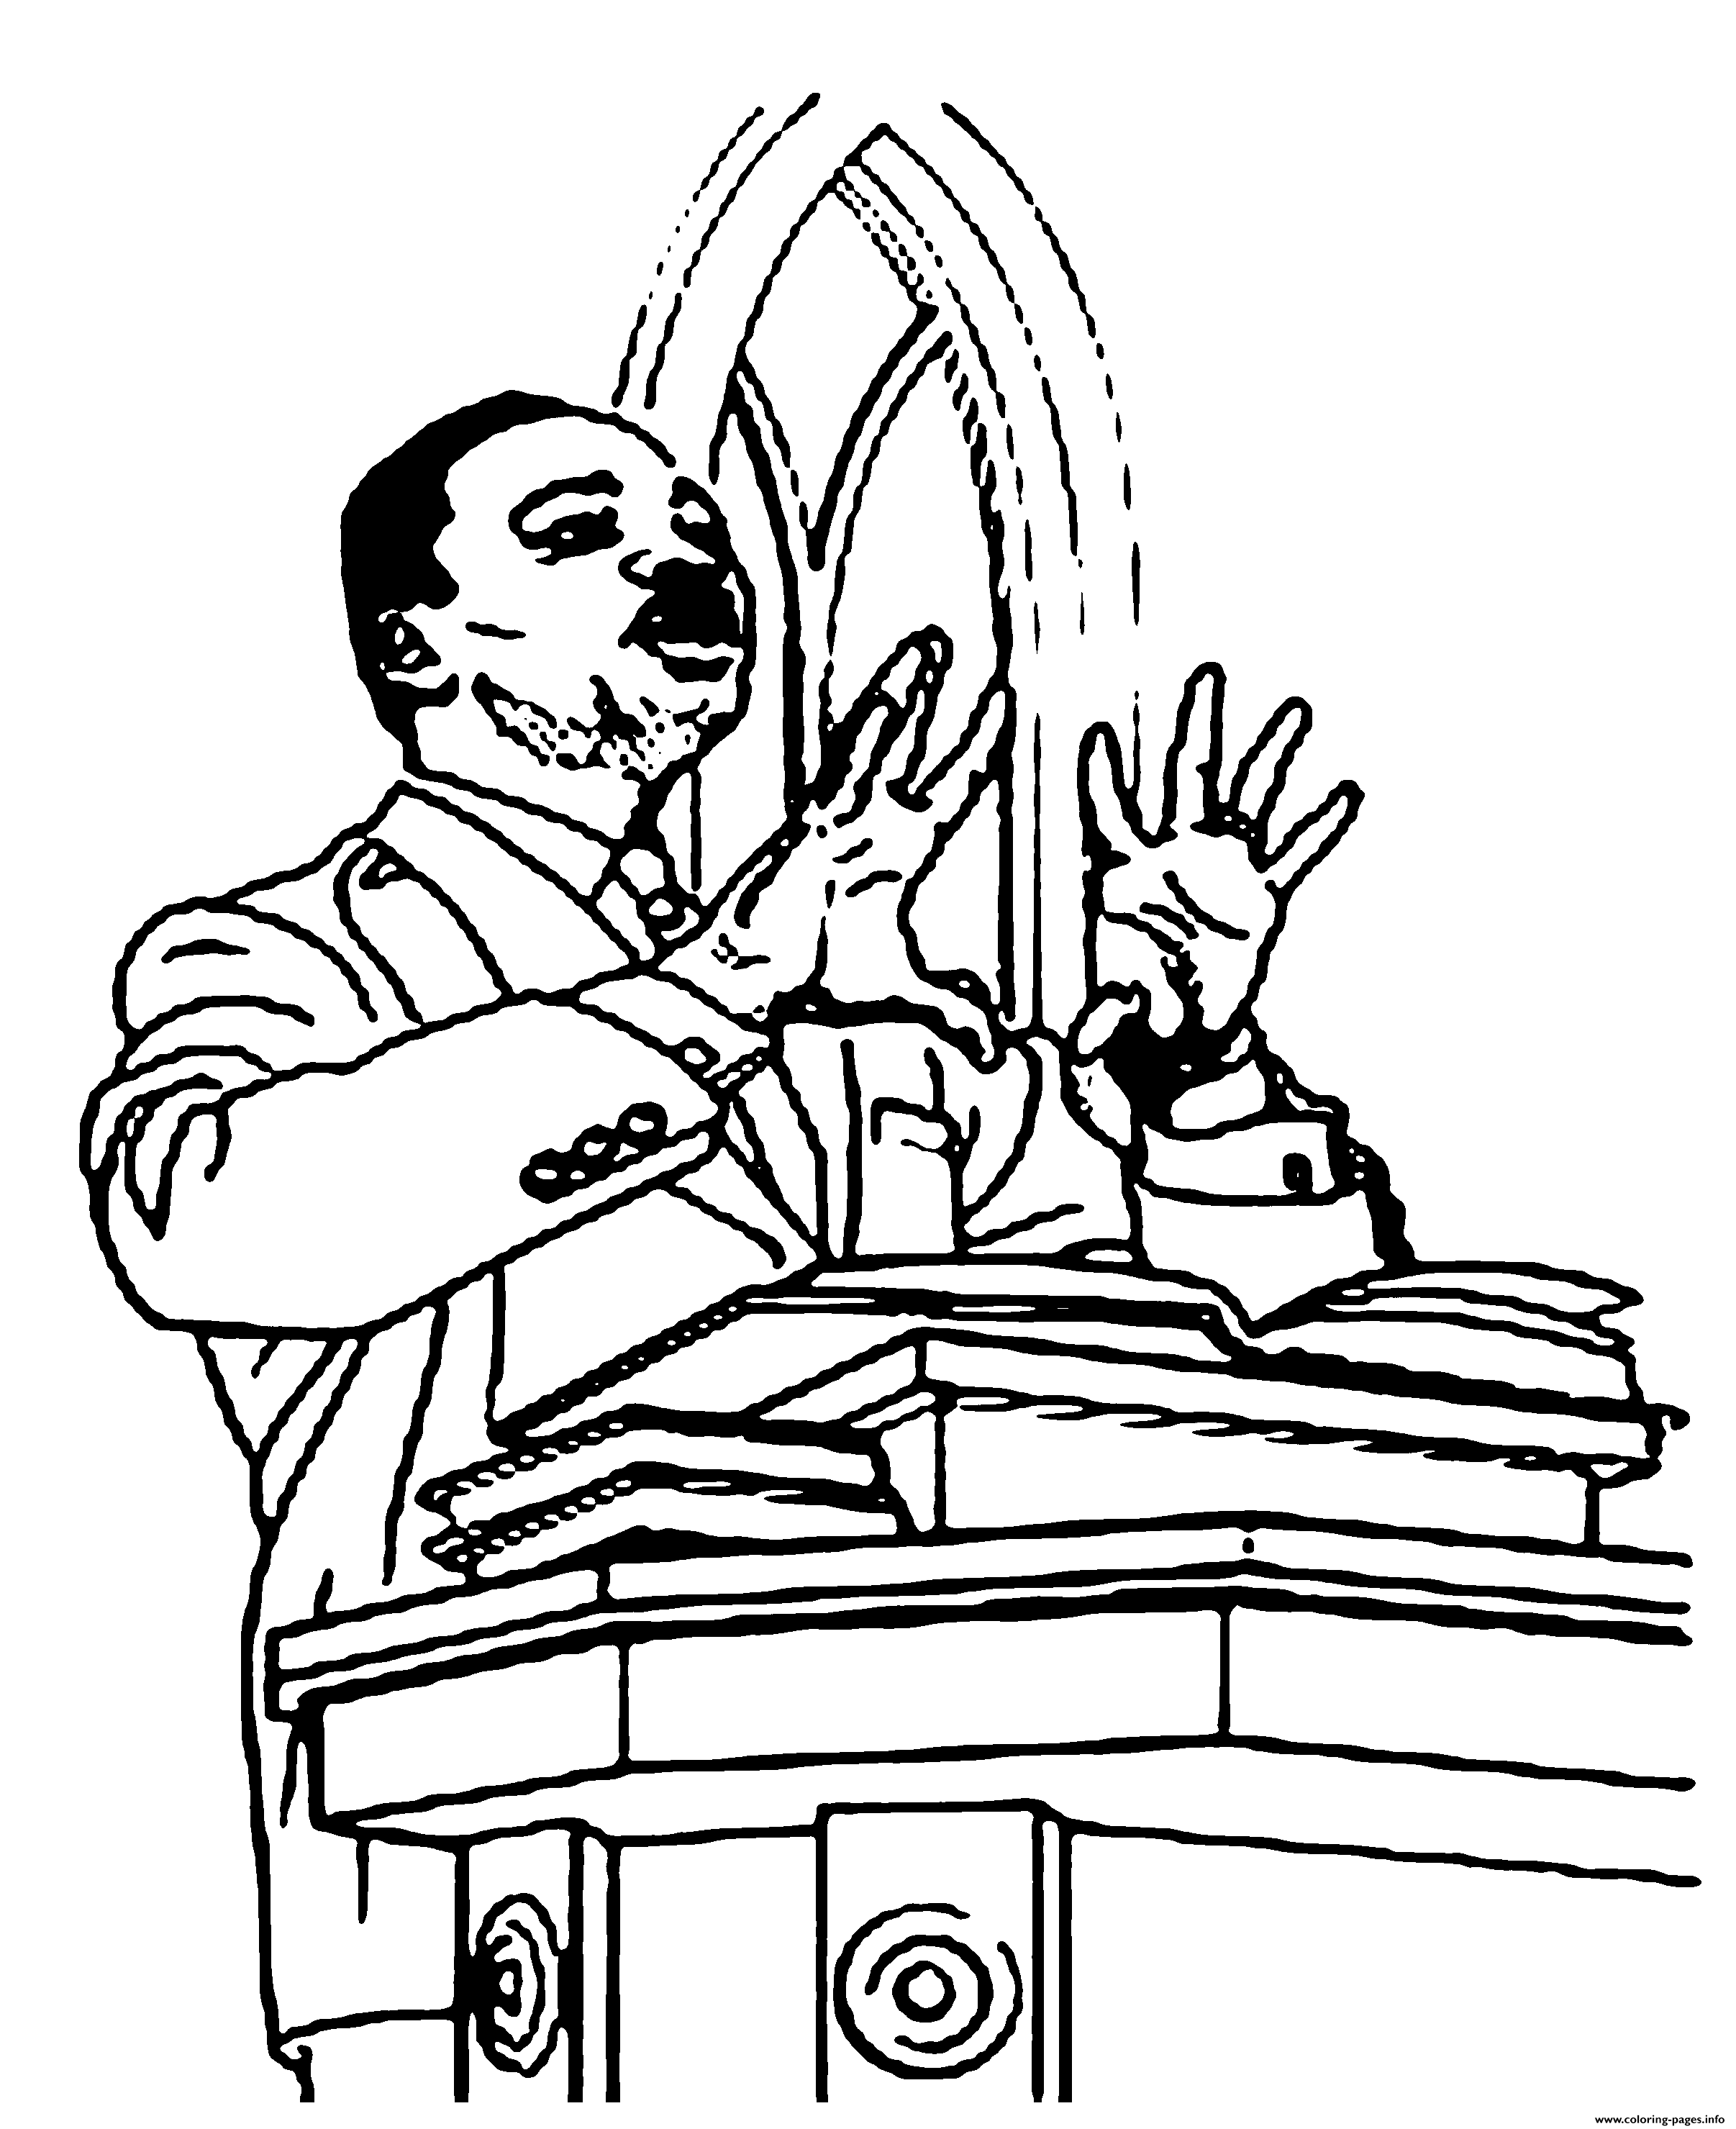 martin luther king jr coloring pages free martin luther king jr coloring pages and worksheets best martin free luther jr king pages coloring